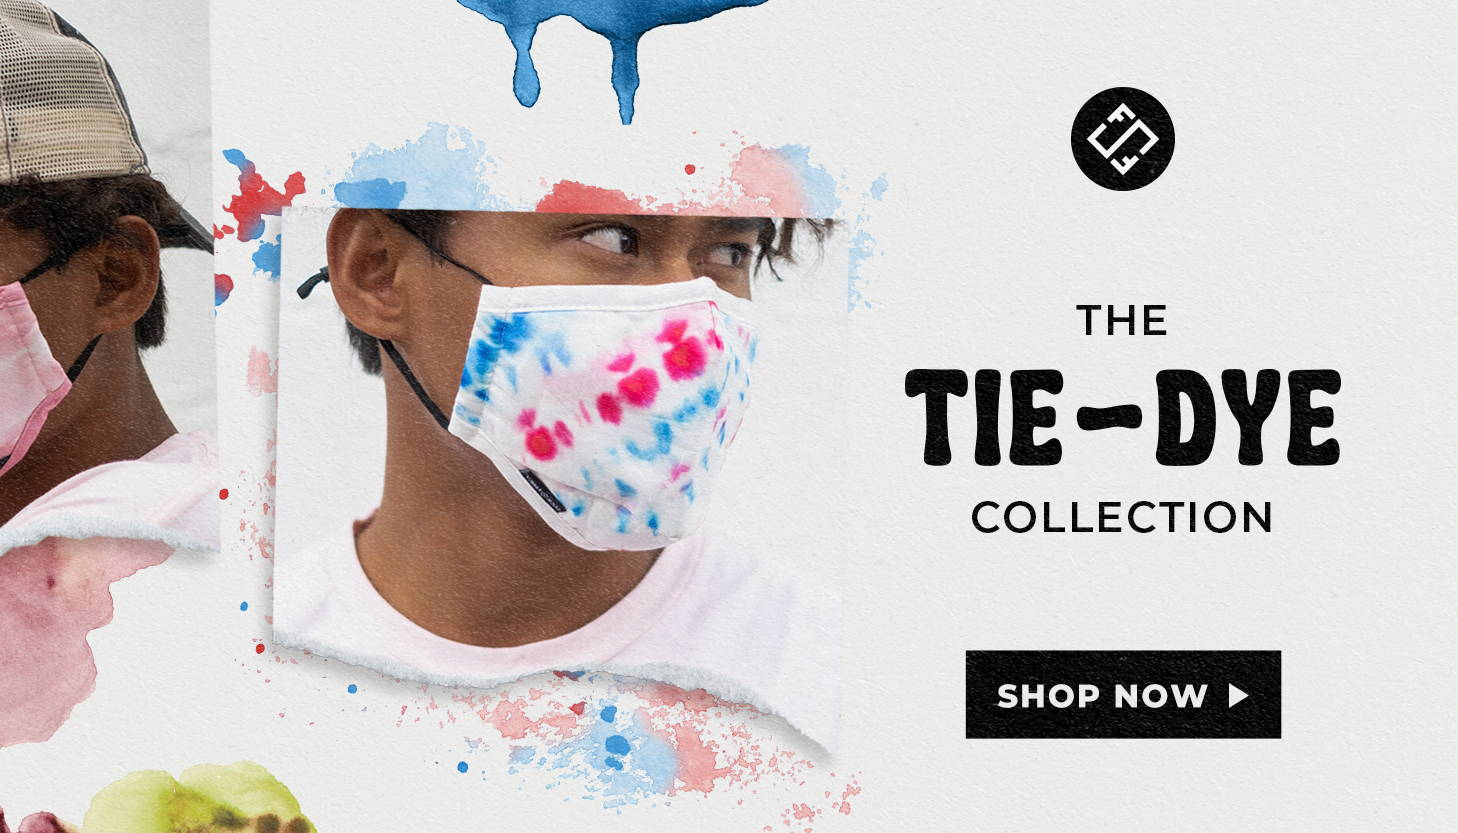 Sock fancy reviews popular items: TRIPLE LAYER PREMIUM FACE MASK: Tie dye collection